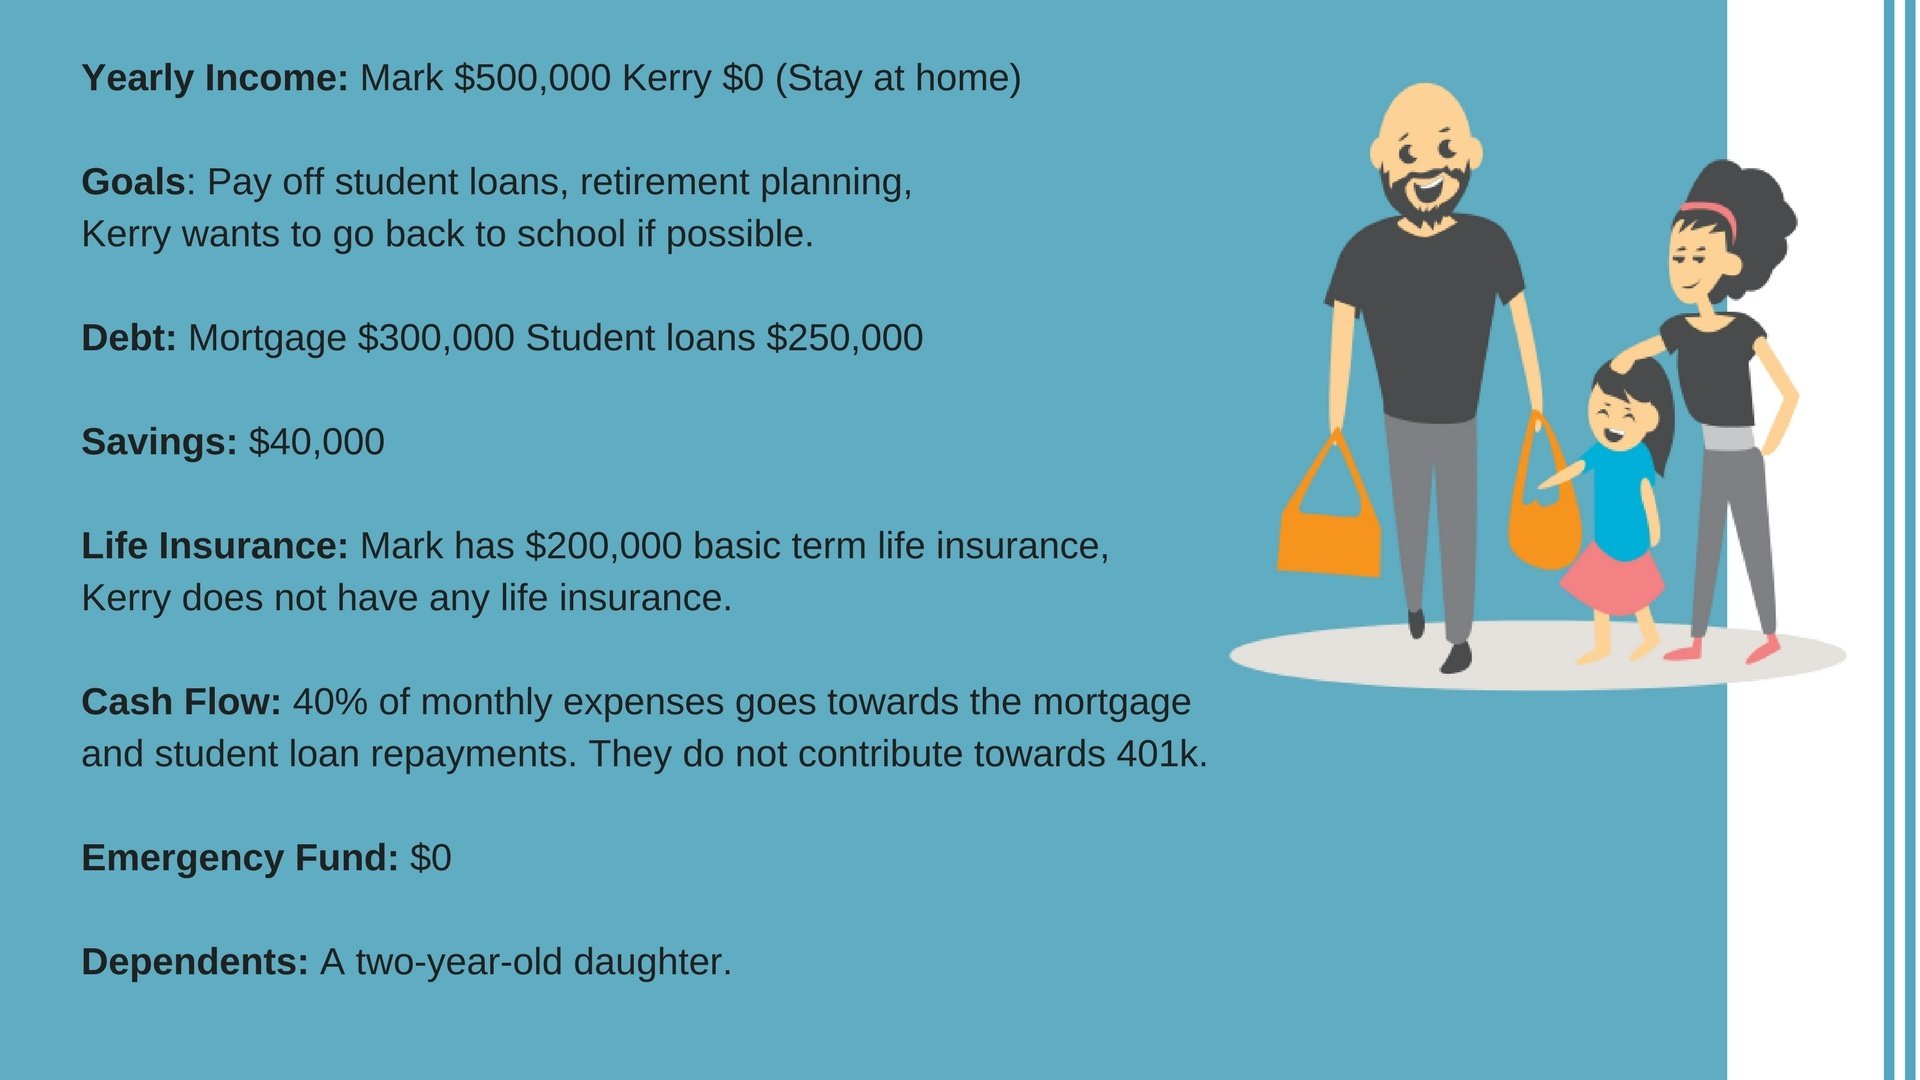 Financial advisors, the tell-all series. Part 4: Do I need a financial advisor? - Zoe Investment Insights Blog - Zoe Personal Finance Blog - Student Loan Debt - Financial Advisor - Financial Planner - Retirement - Budget Calculator - Investment Management - Emergency Fund - Zoe Financial